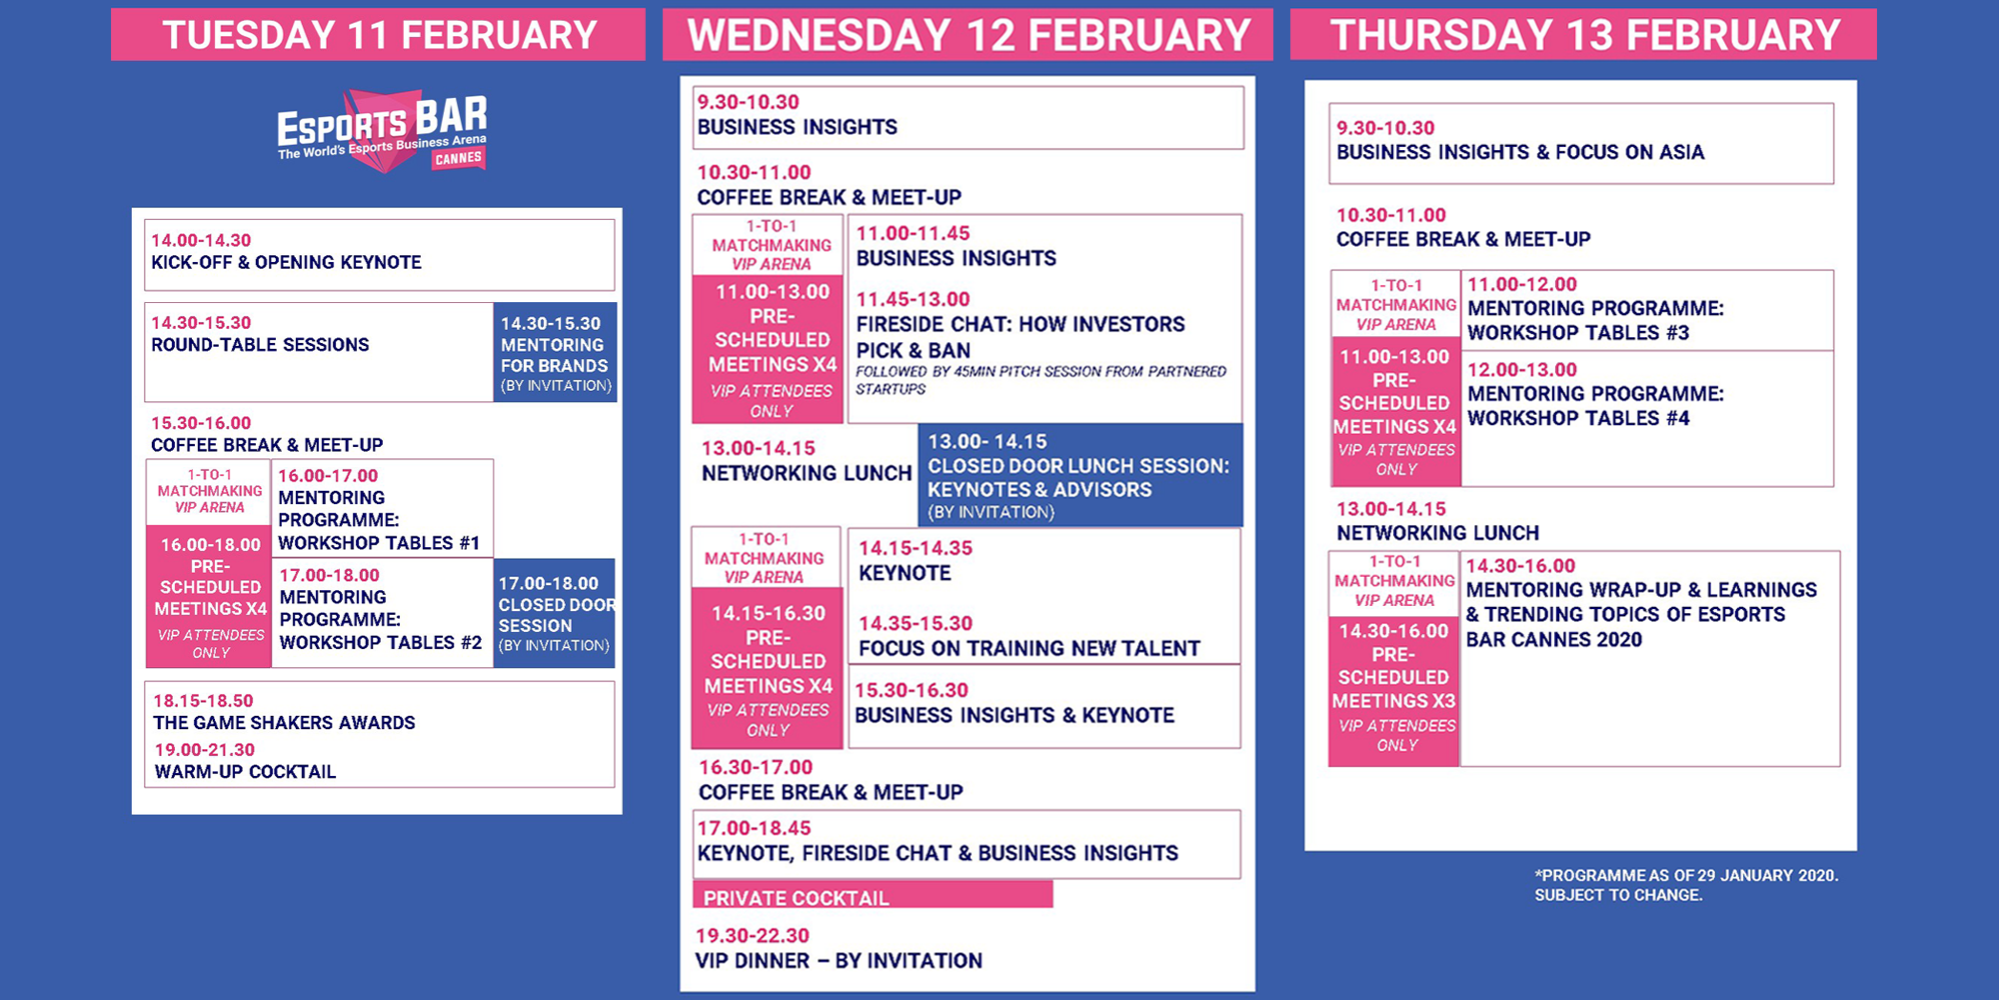 ESB Cannes at-a-glance programme